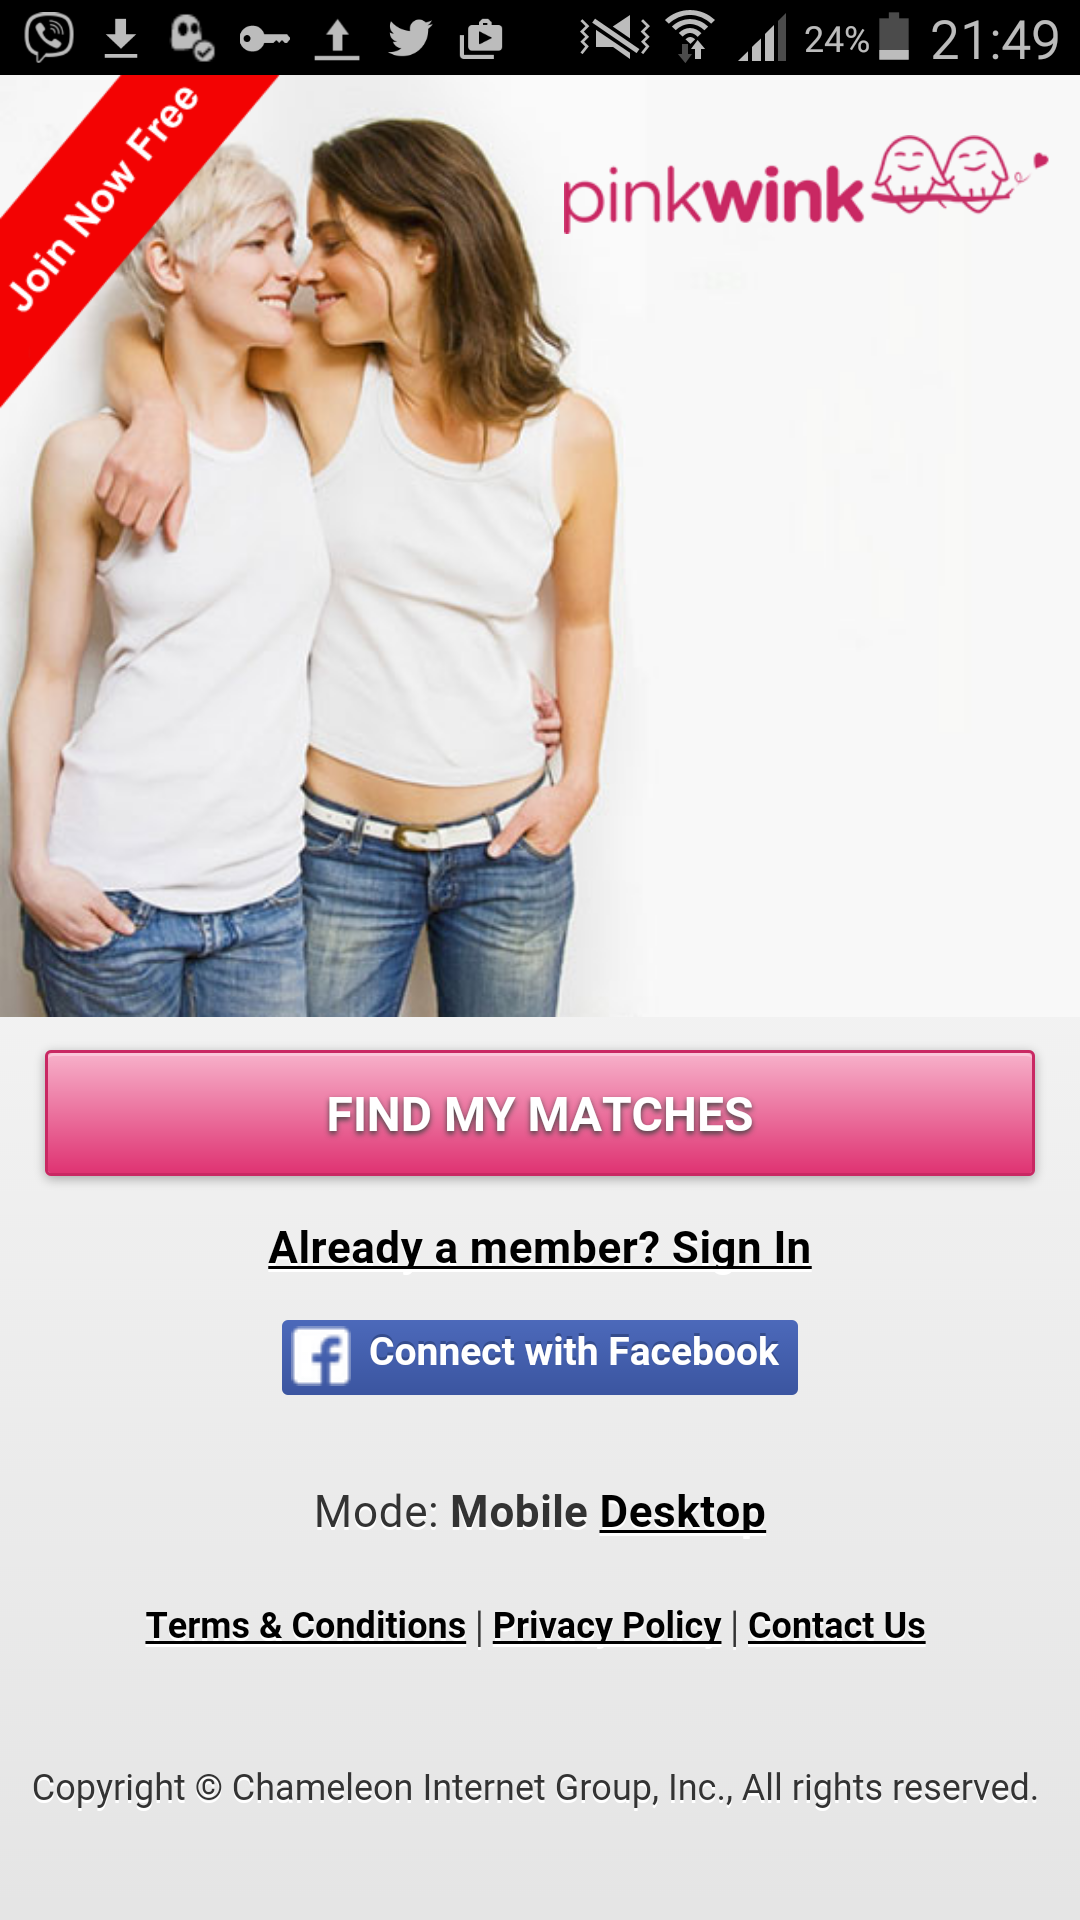 mc keesport lesbian dating site Single mckeesport members interested in foot fetish dating  single lesbian foot subs  all members of this dating site must be 18 years or older.